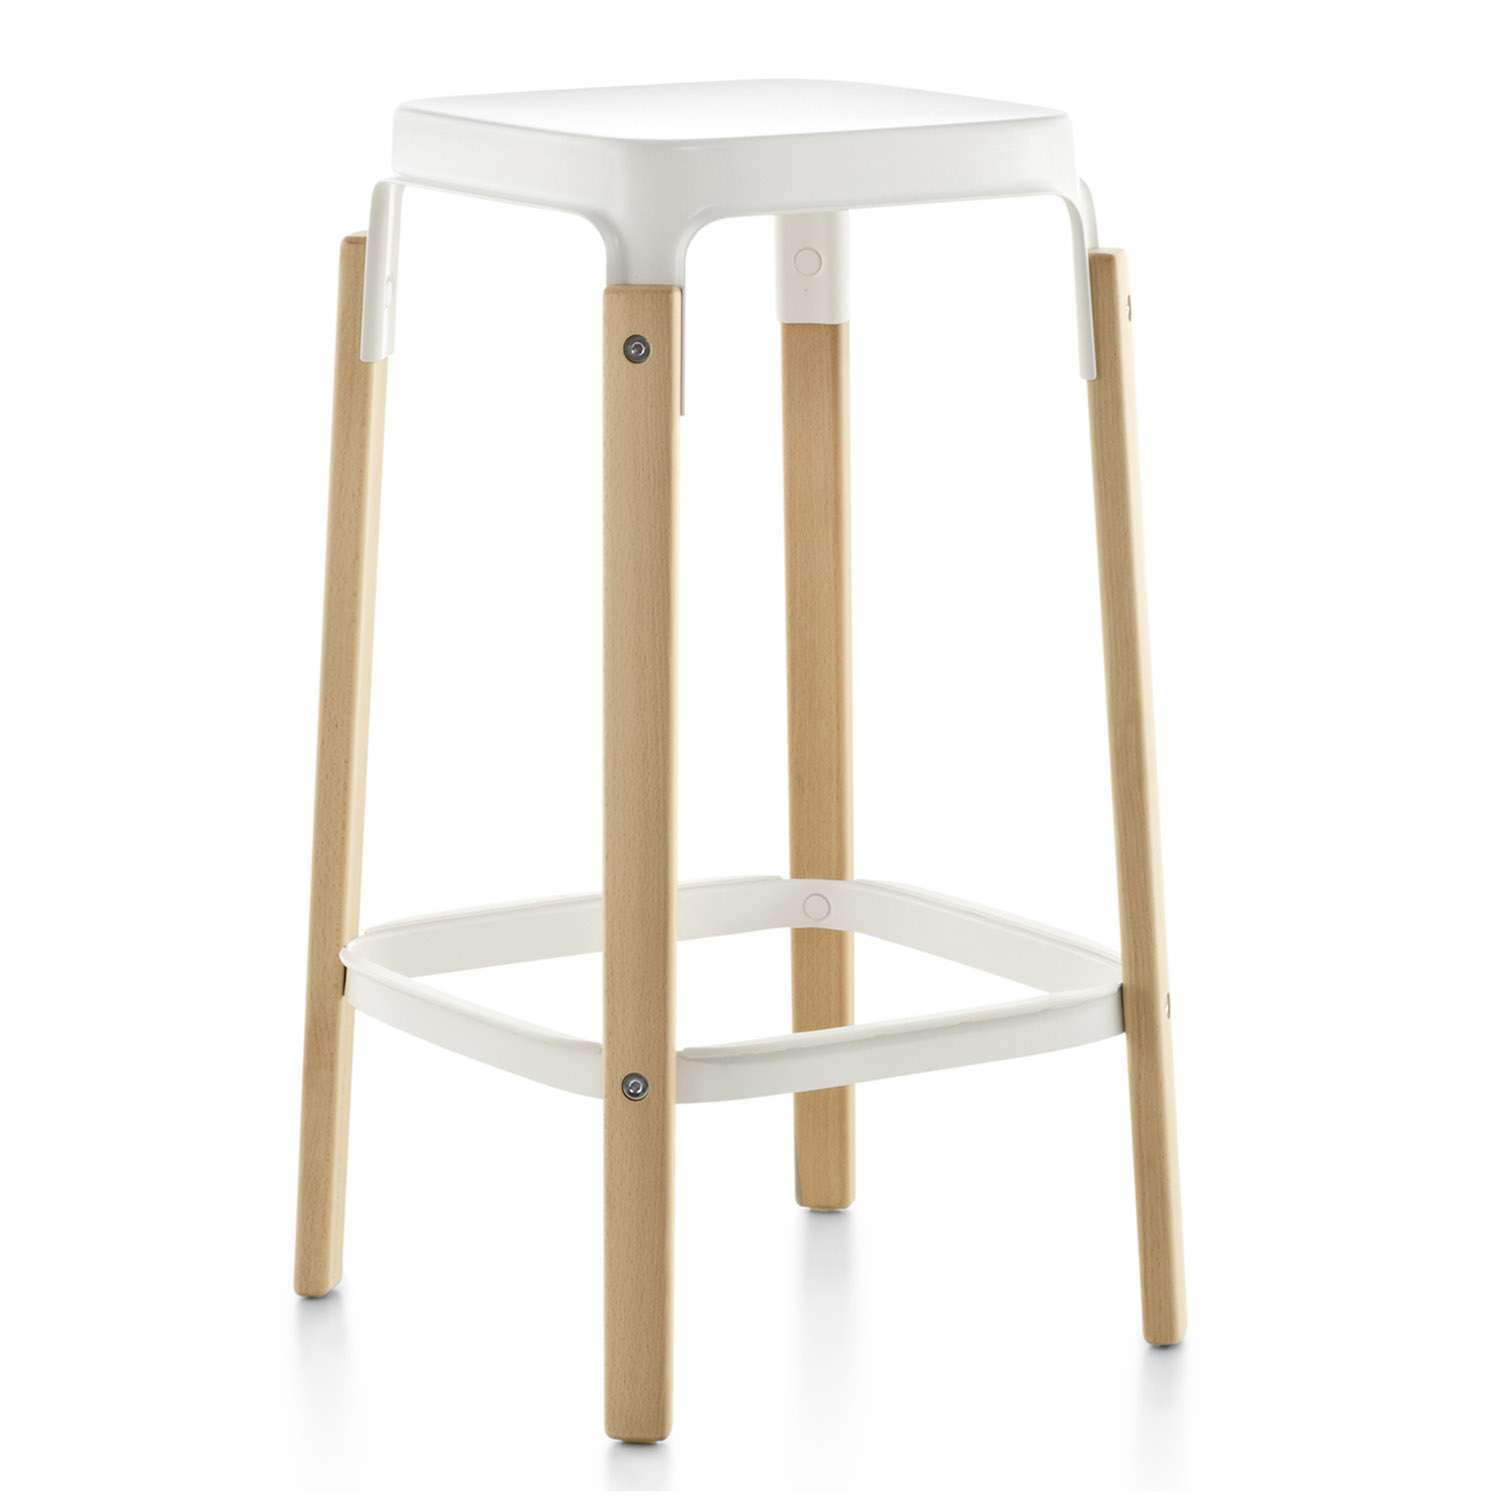 Steelwood Bar Stool White Seat and Foot-rest, Natural Beech Frame, 78cm